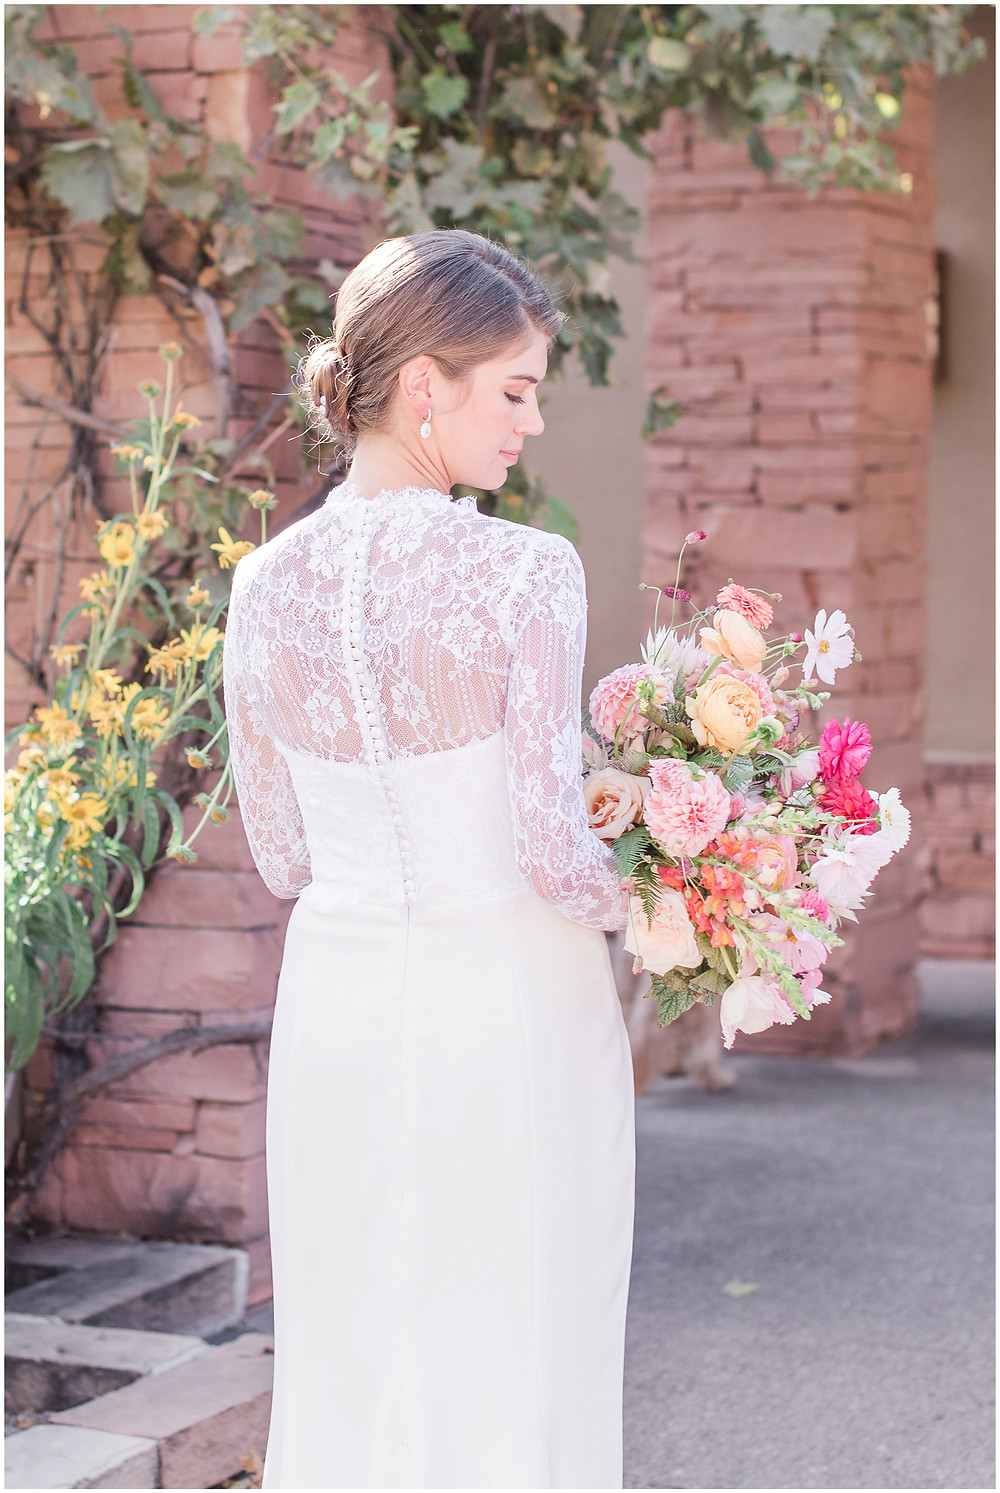 Lace Wedding Dress. Elegant Wedding Dress. Classic Wedding Dress. Colorful bouquet. Wildflower Bouquet. Messy Bouquet. Trendy Bouquet. 2020 Bouquets. Lace Wedding Dress. Classic Wedding Dress. Classic Bride. Trendy Bride. Santa Fe Wedding. Santa Fe Wedding Photographer. New Mexico Wedding. New Mexico Wedding Photographer. La Posada Wedding. La Posada Santa Fe.